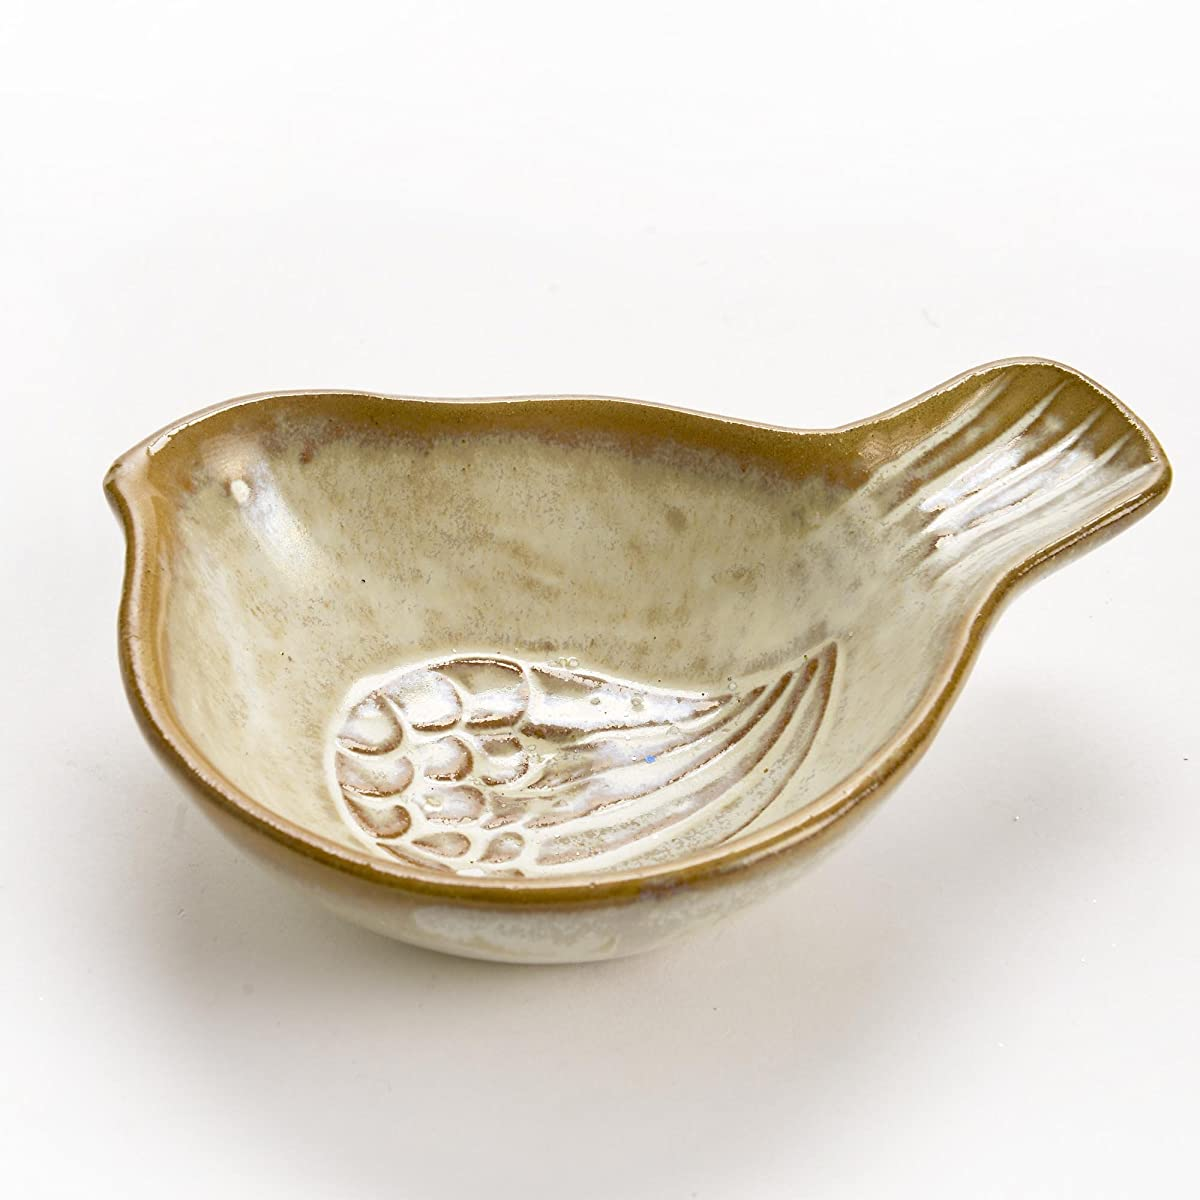 Bird Shaped Decorative Ceramic Serving Bowl